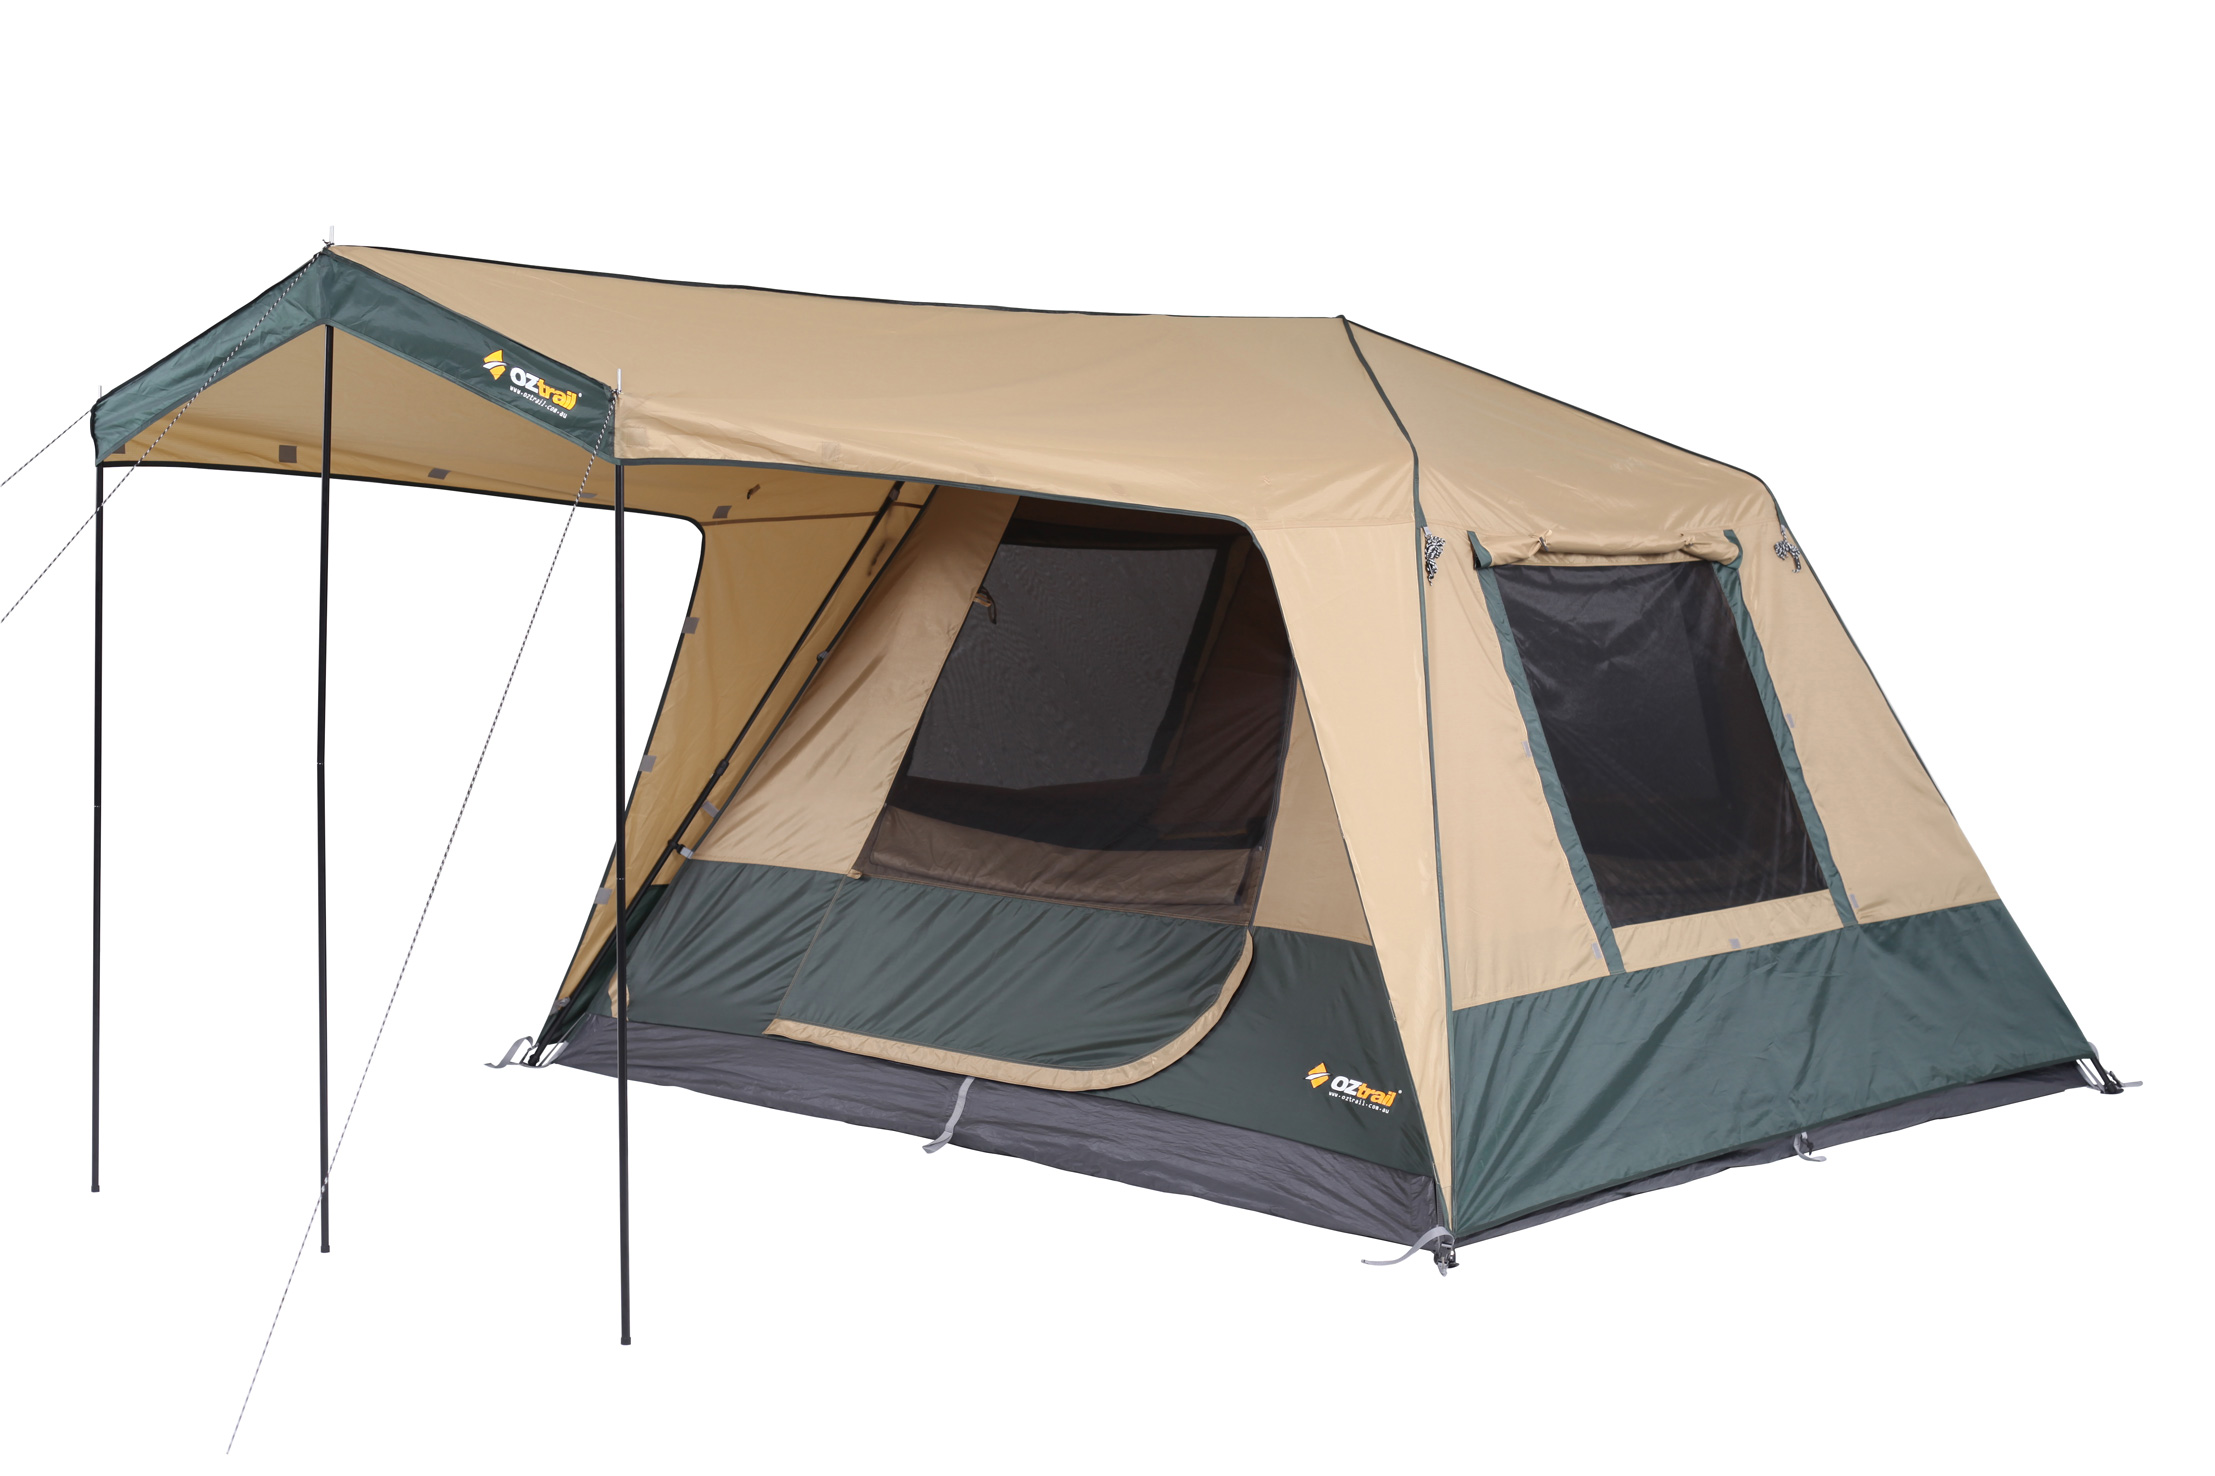 Cap fly tents on the other